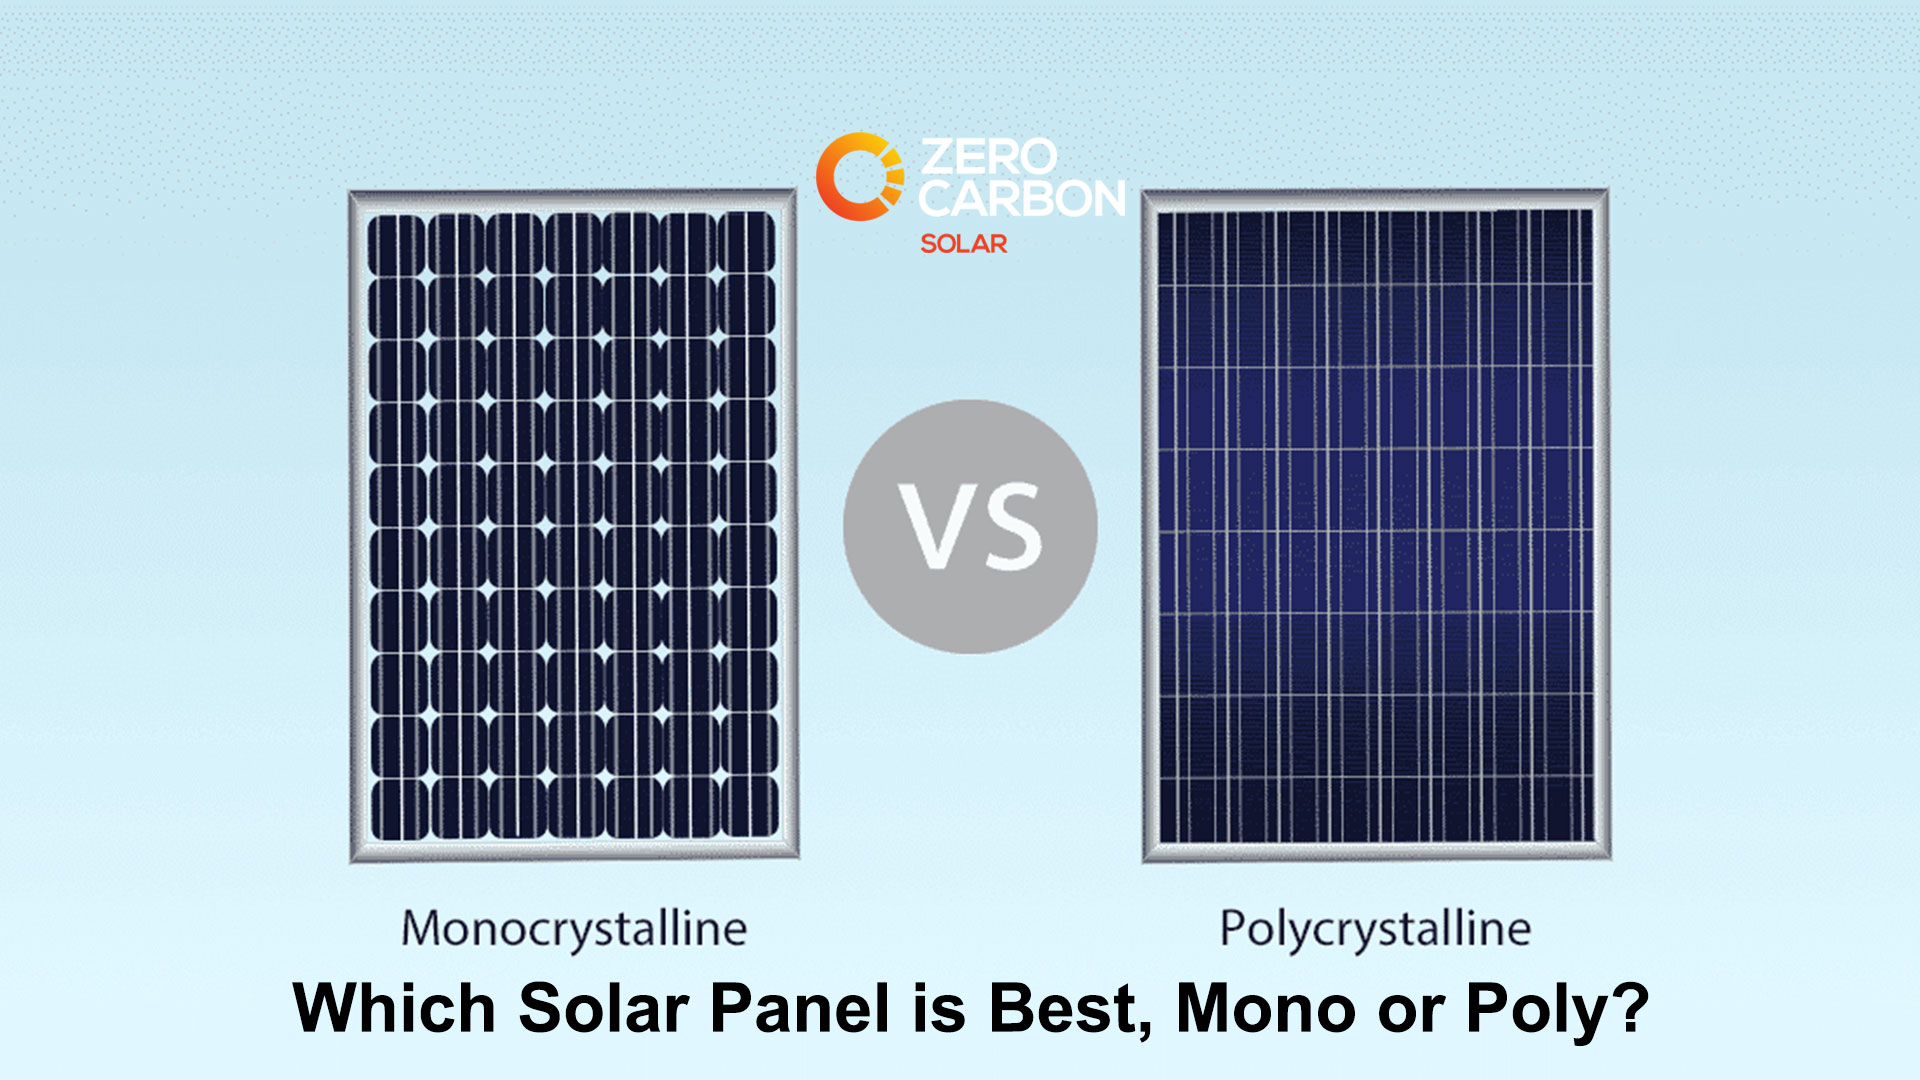 Which Solar Panel is Best, Mono or Poly?